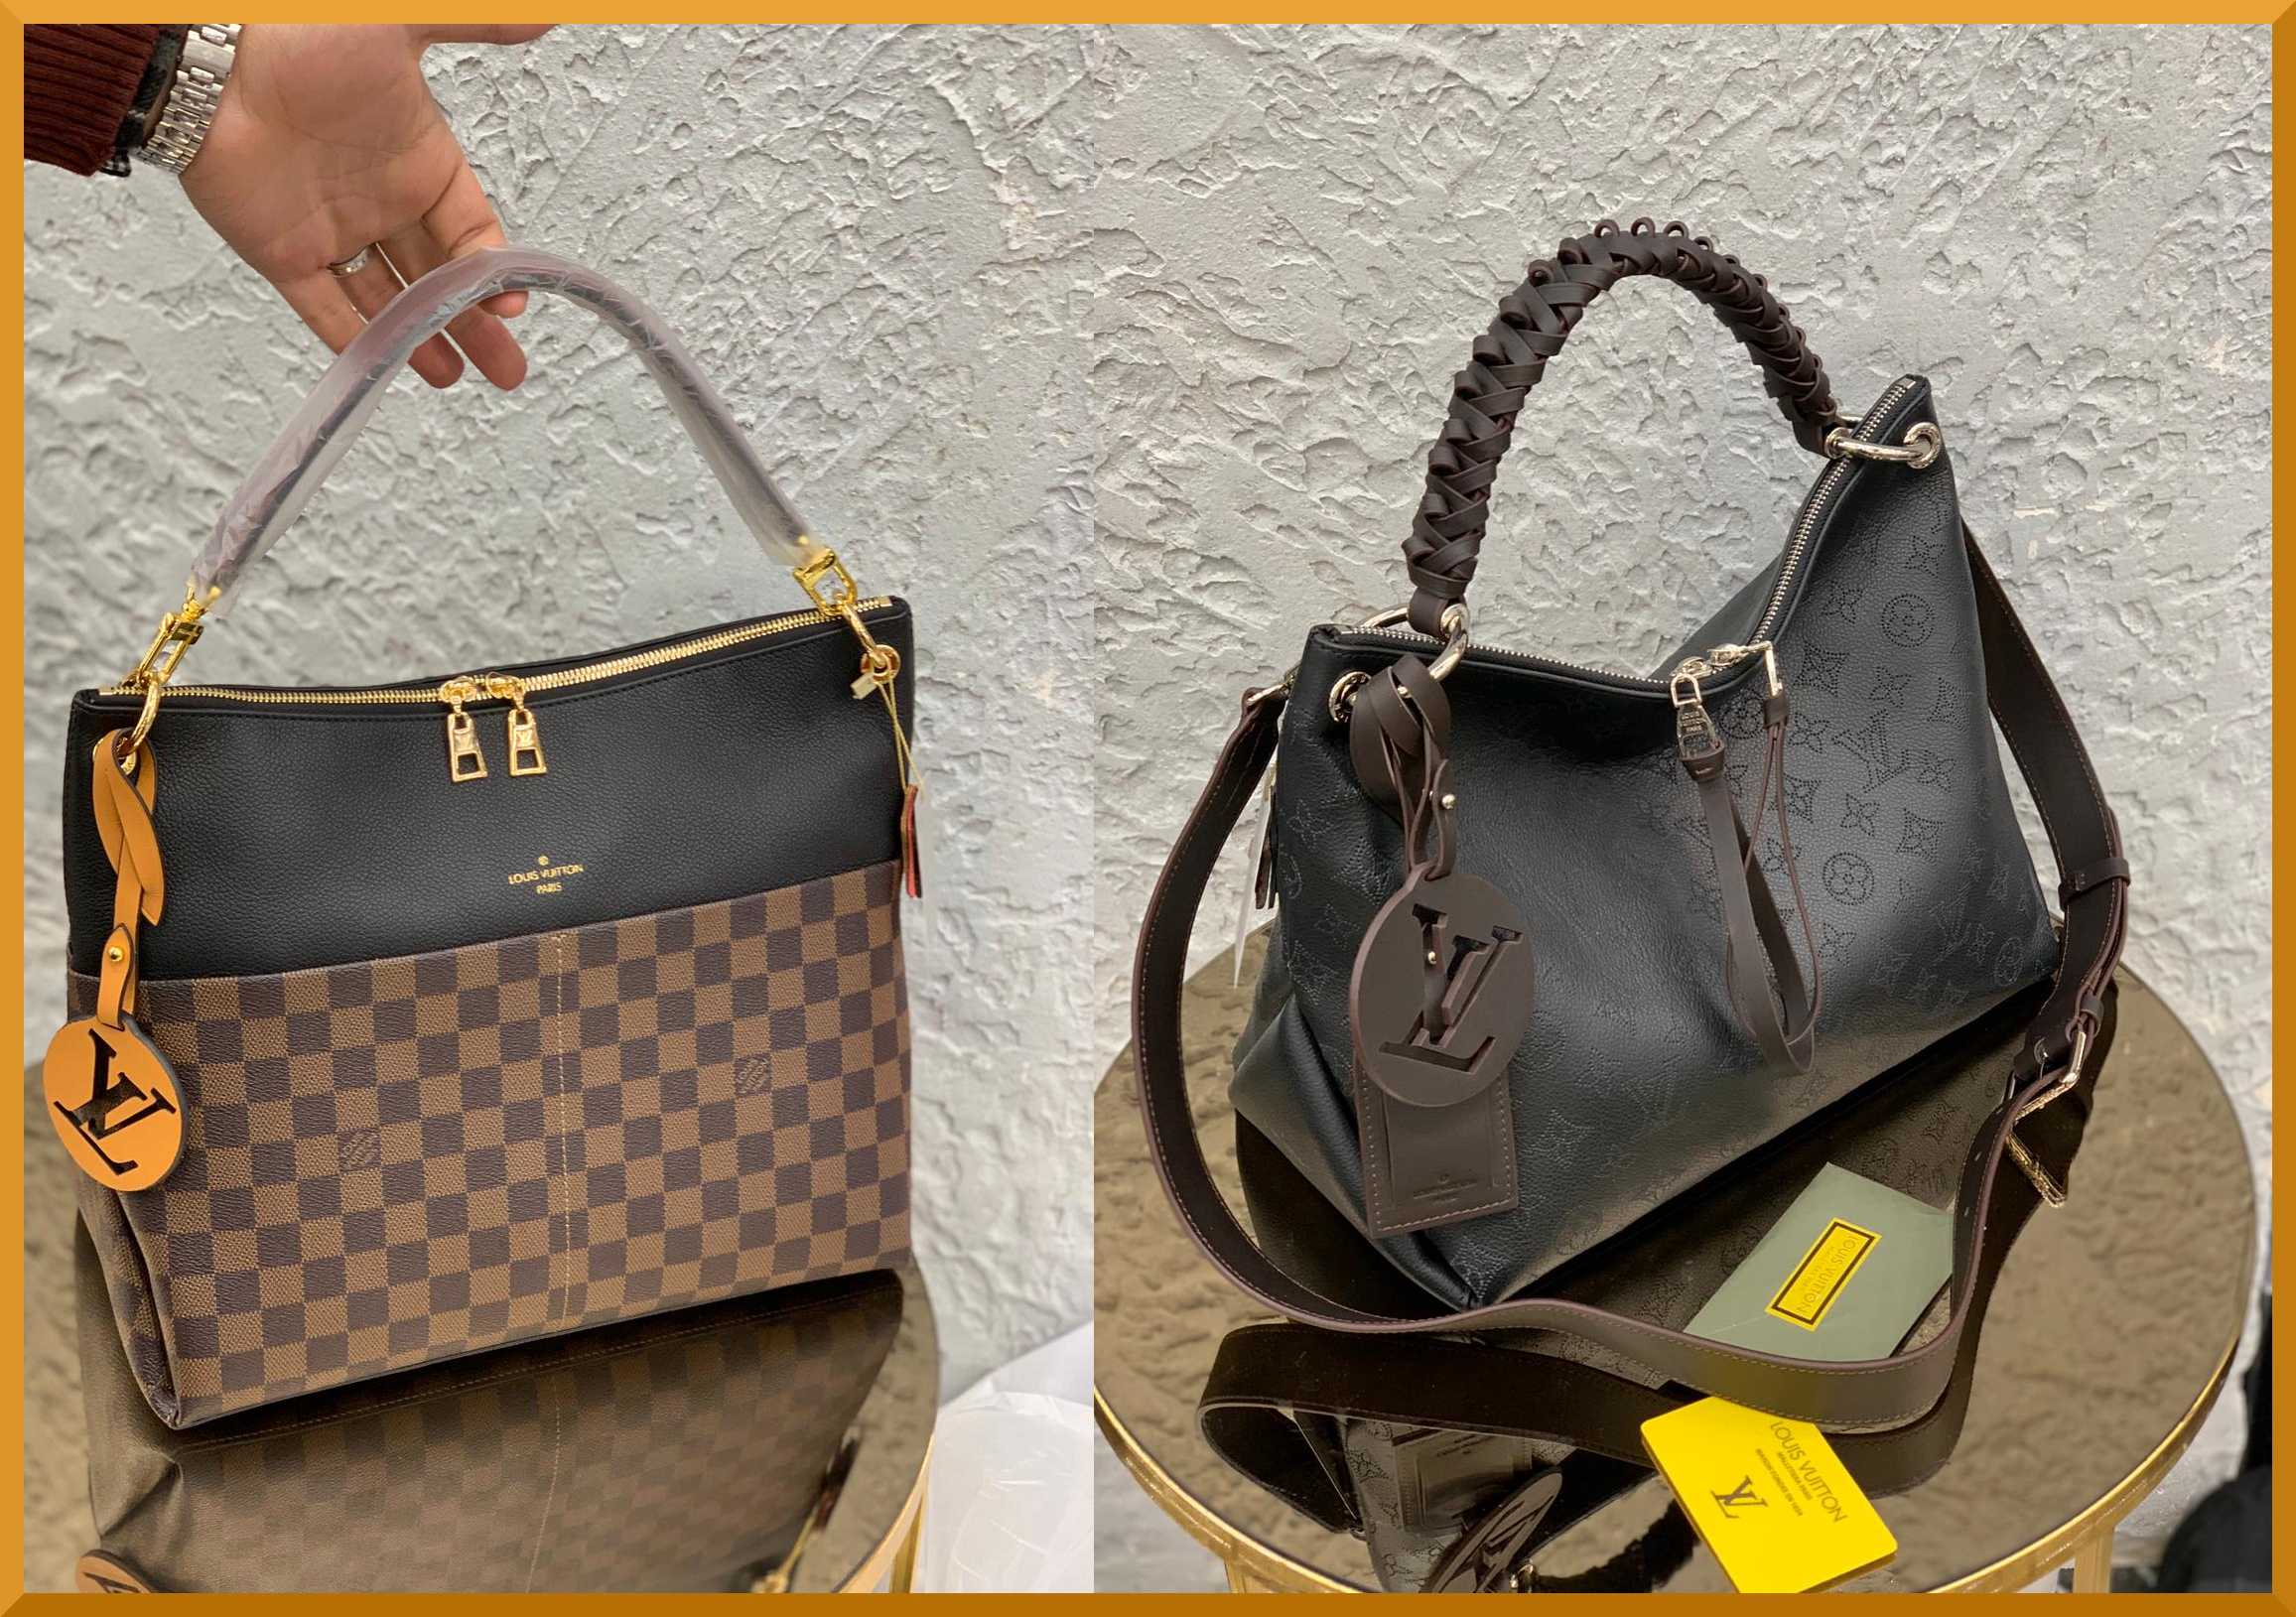 I love the folds and the braided leather handle on these Louis Vuitton high fashion tote bags this season.